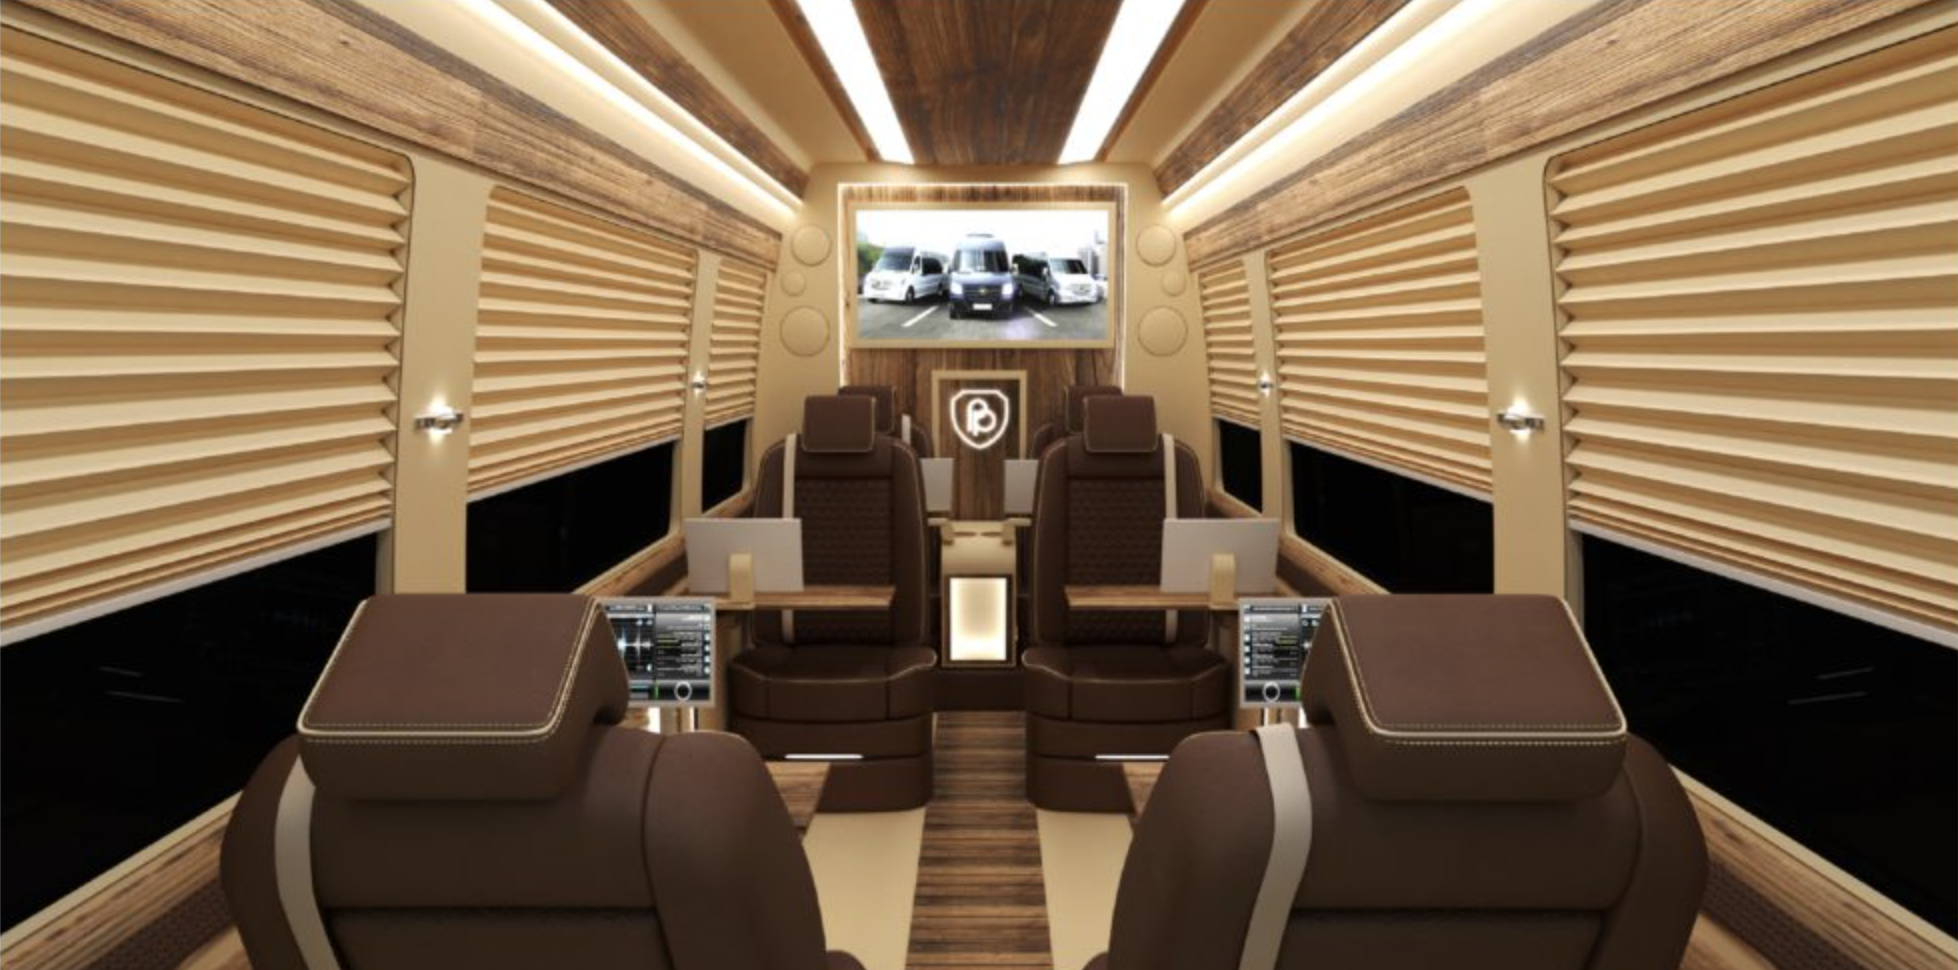 Busprestige Luxury Sprinter Design